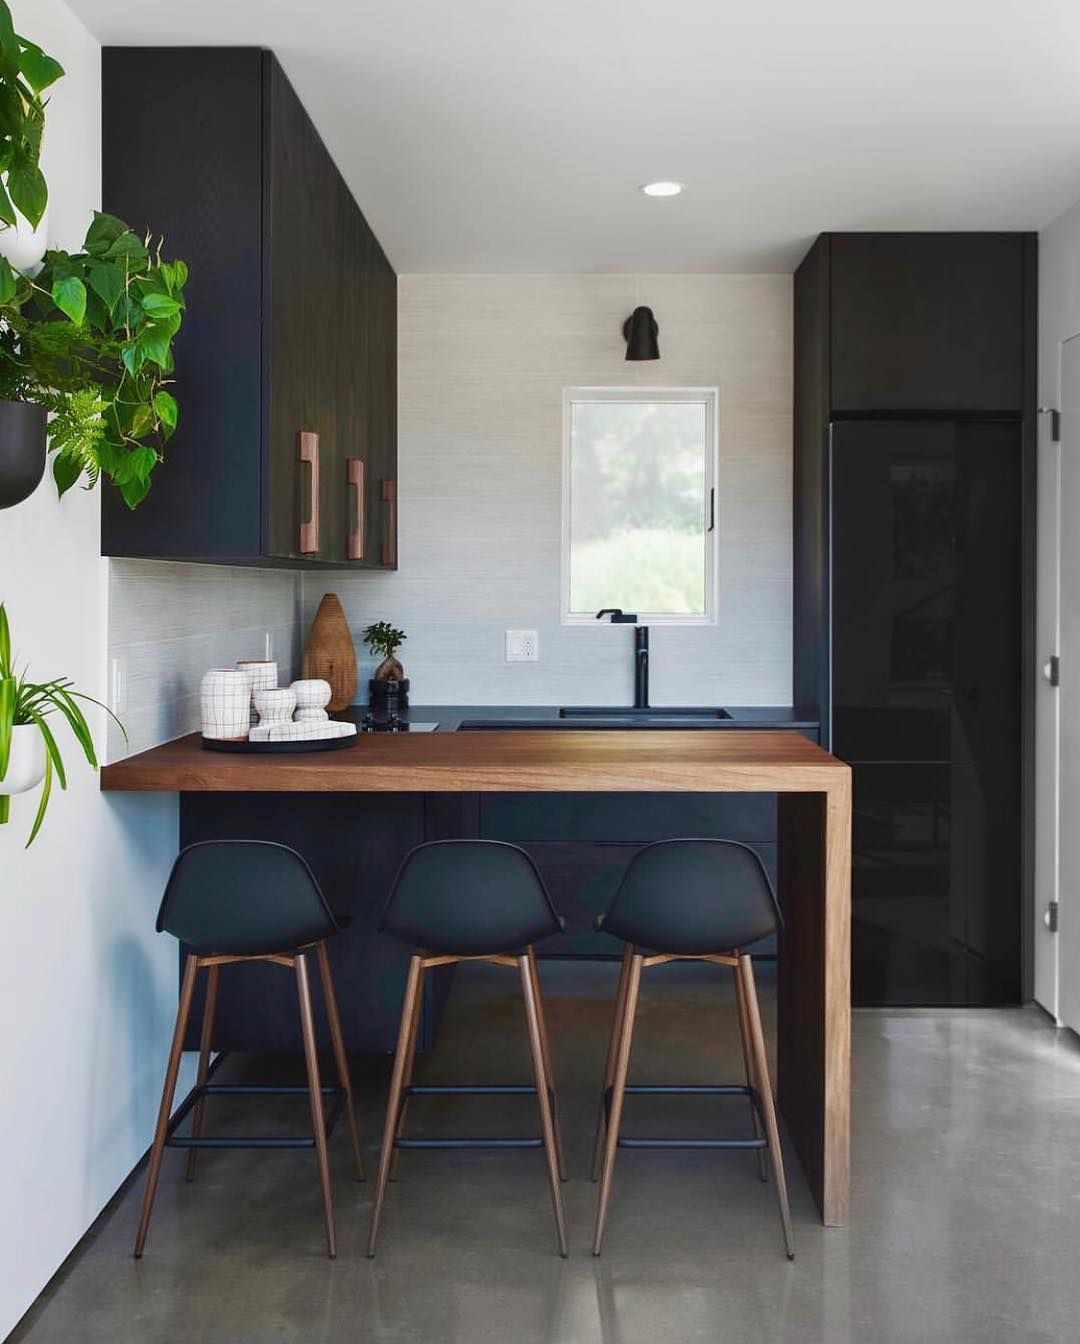 Small Space Big Style Loving Every Detail Of This Design By Dichotomy Interiors For Mod Kitchen Design Small Black Kitchen Cabinets Interior Design Kitchen